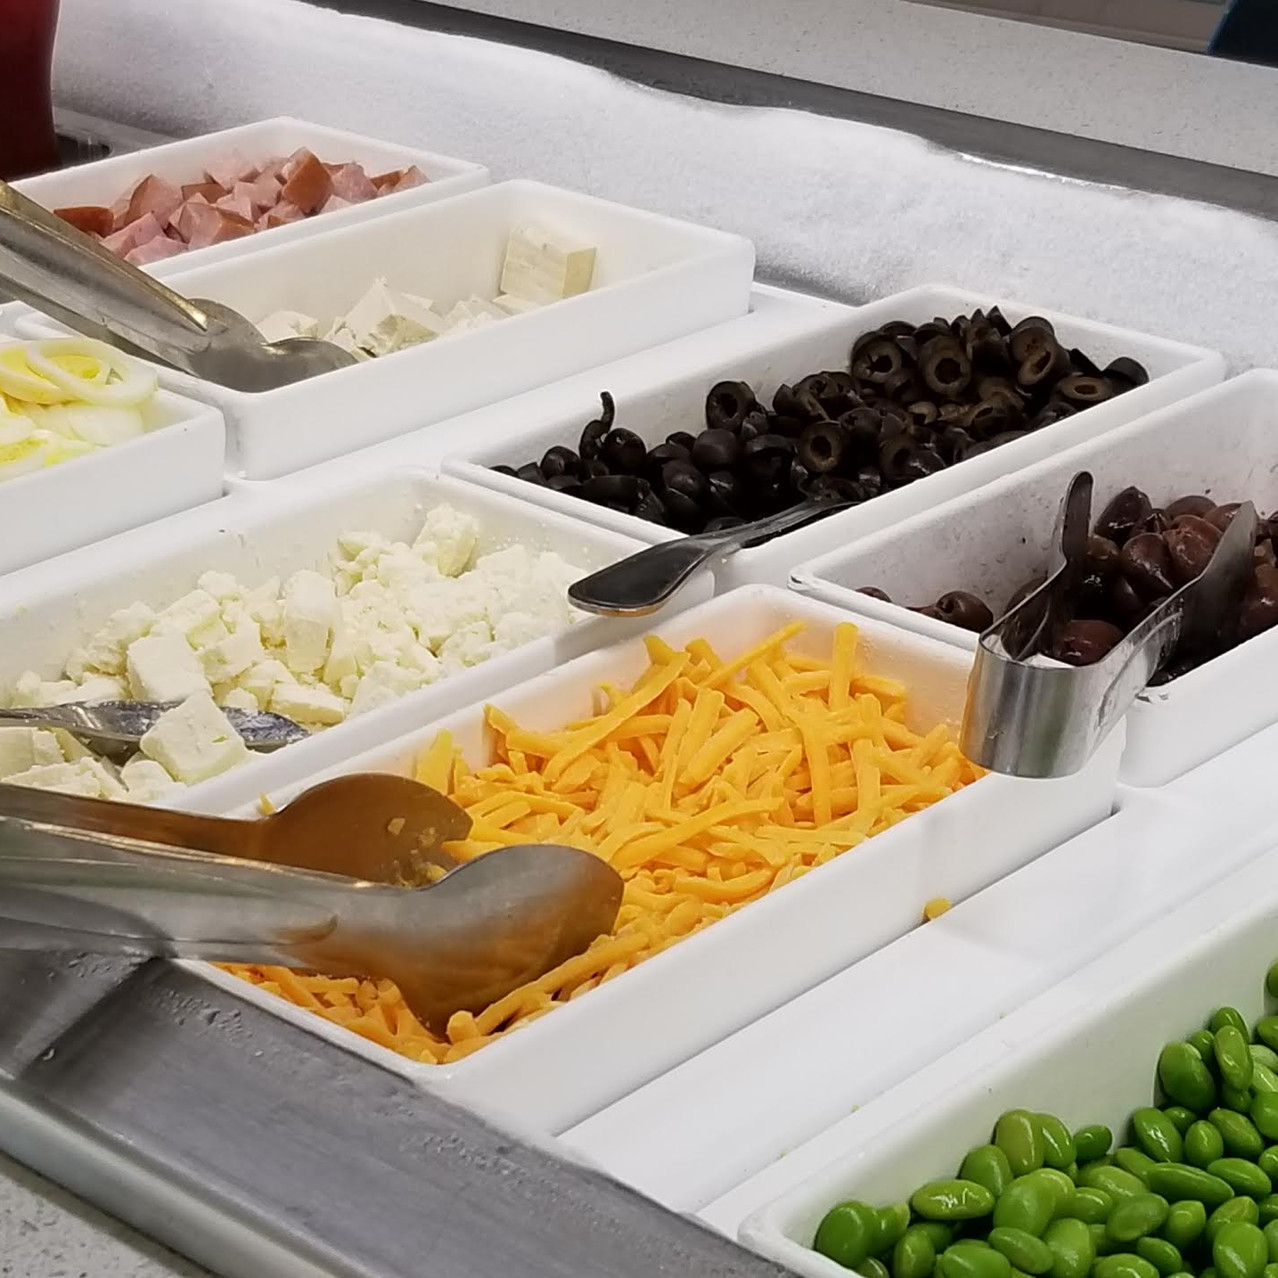 Salad bar in the Cafe.